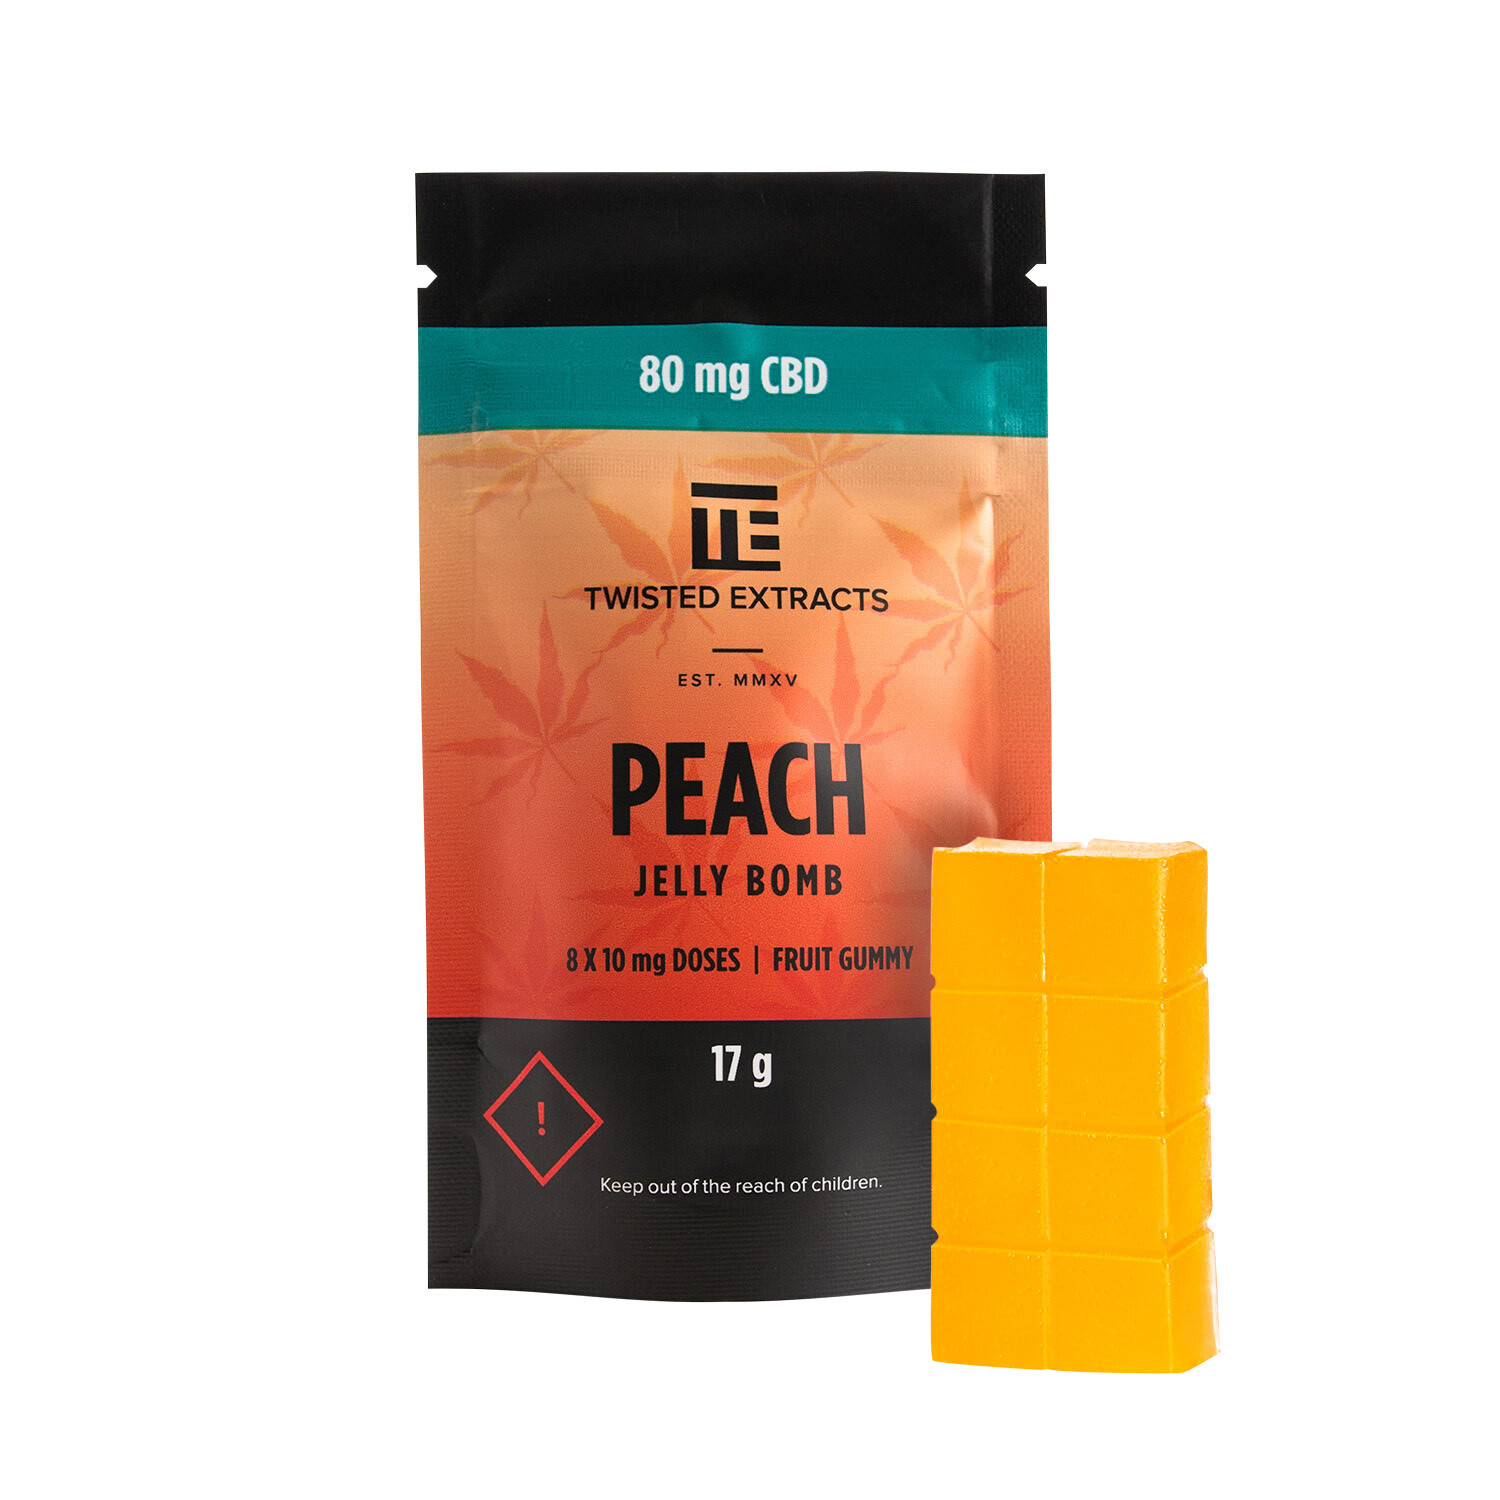 80mg CBD Peach Jelly Bomb by Twisted Extracts